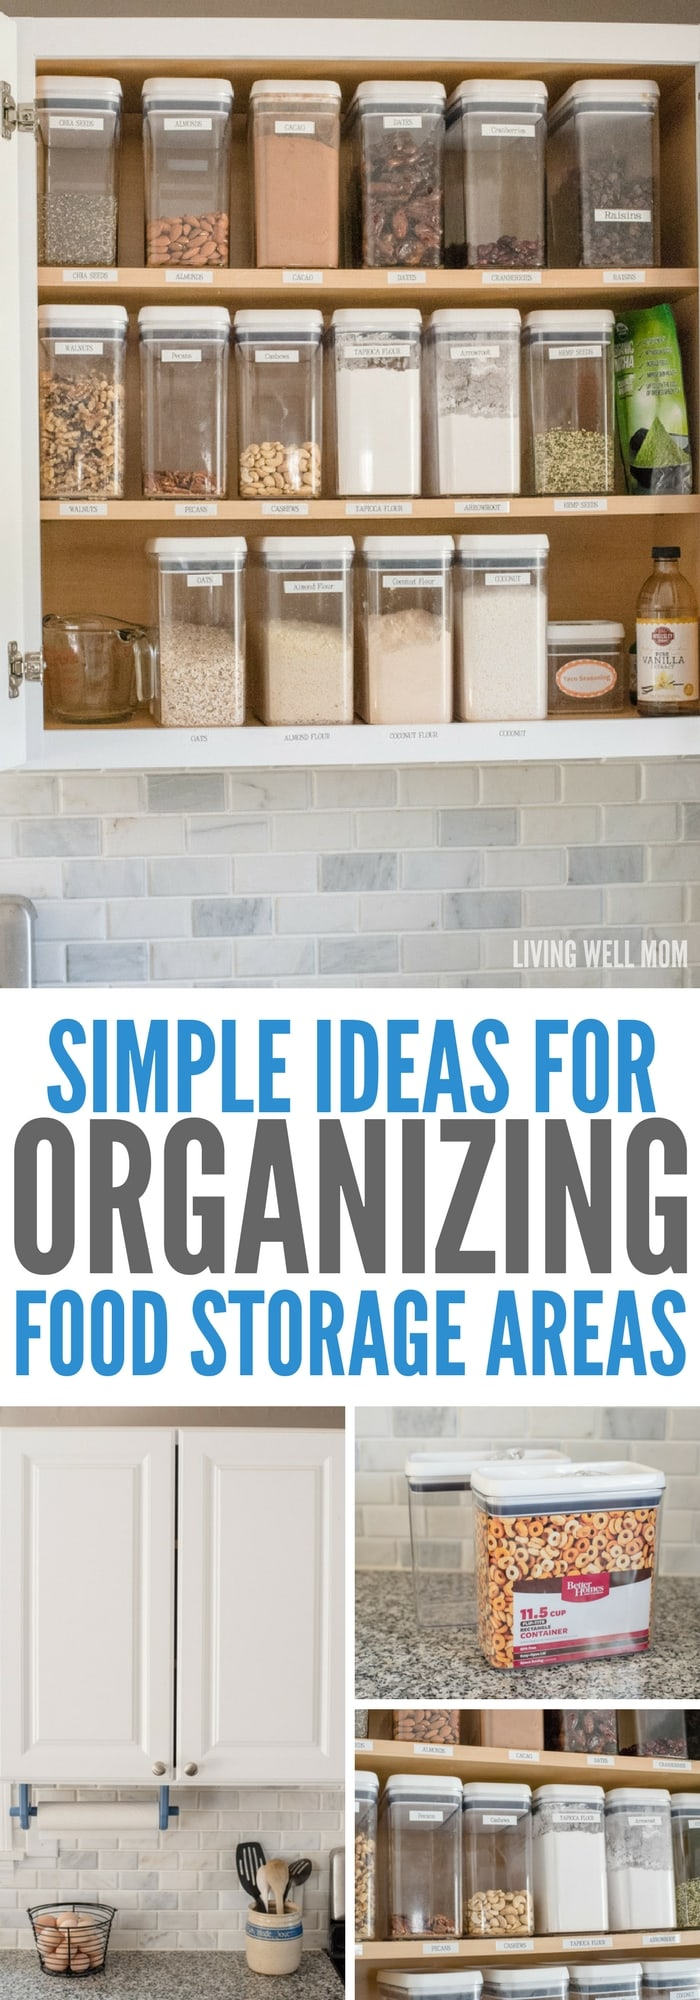 Tired of losing track of what's in your kitchen food cupboards? These two simple tips that will transform how you organize food storage areas & make life so much easier!